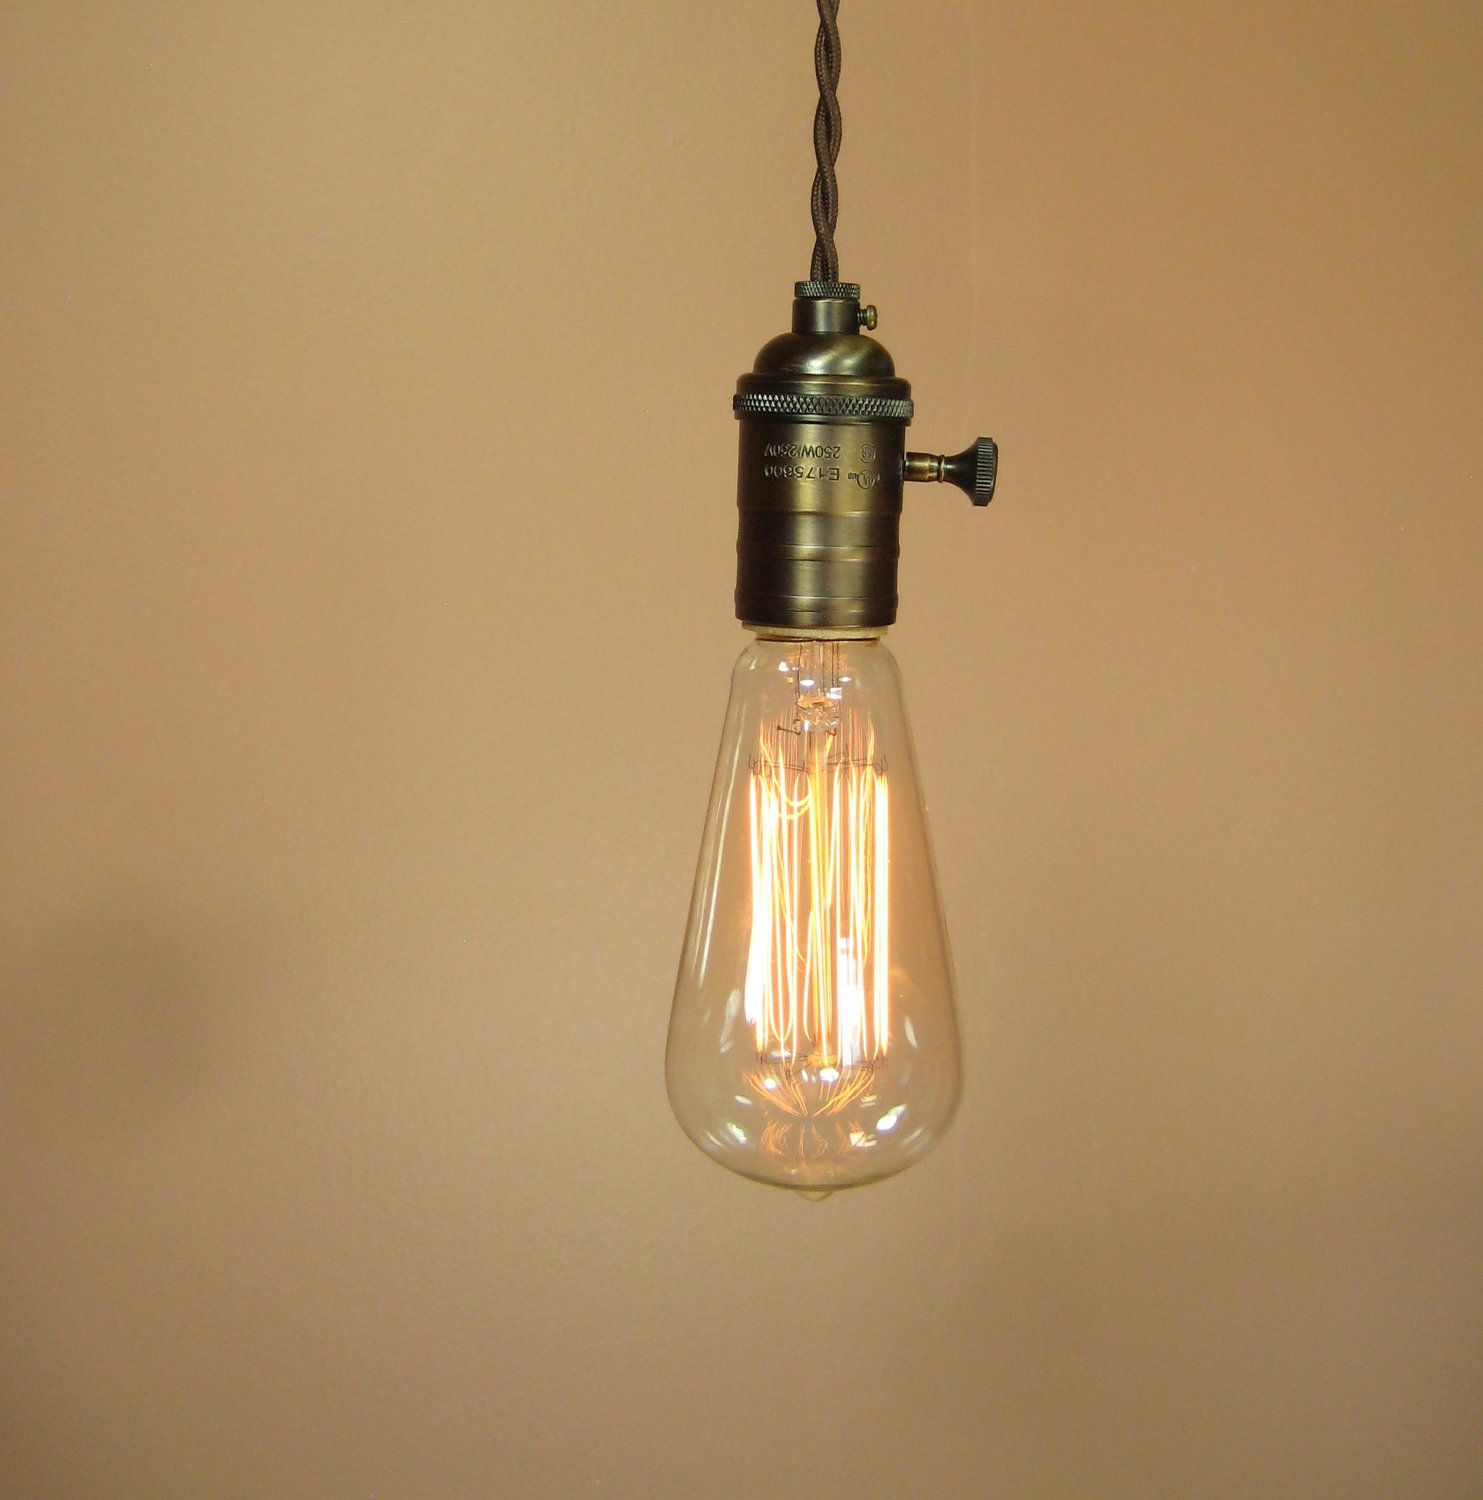 Plug In Pendant Lighting | Pendant Light With 16 Feet Of Brown, Cloth  Covered Wire